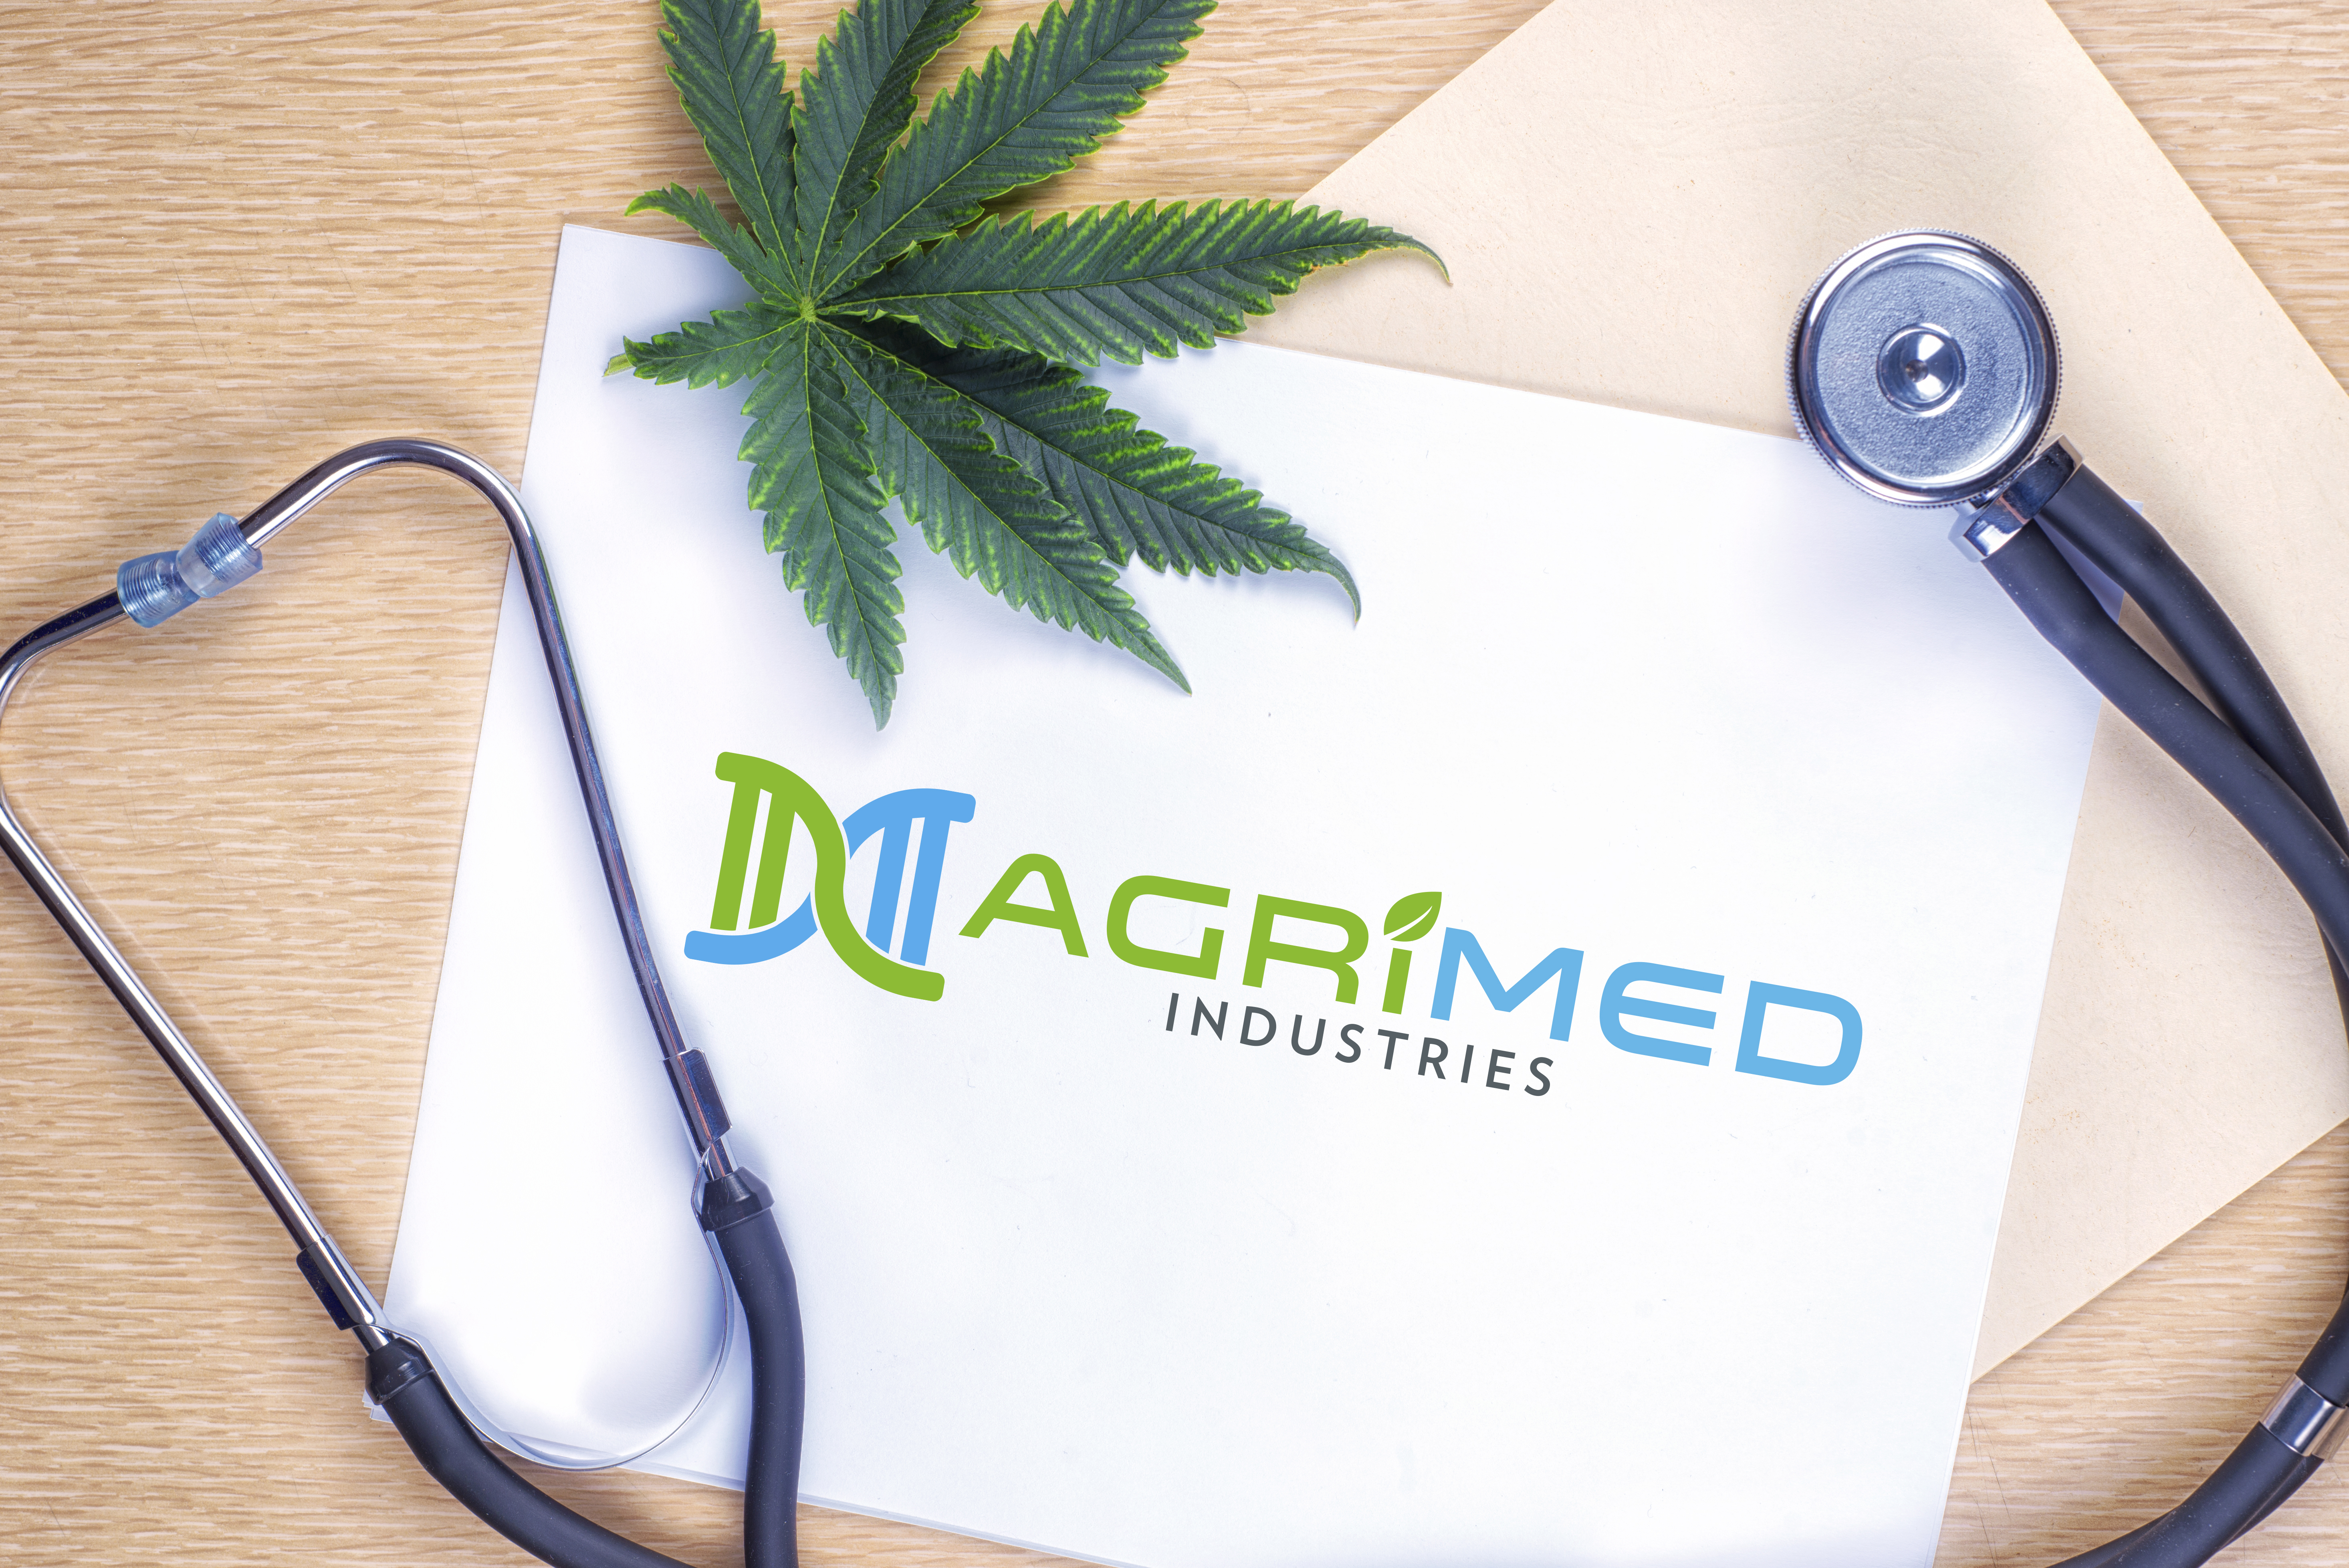 Medical Cannabis Certification For Pennsylvania Doctors Agrimed